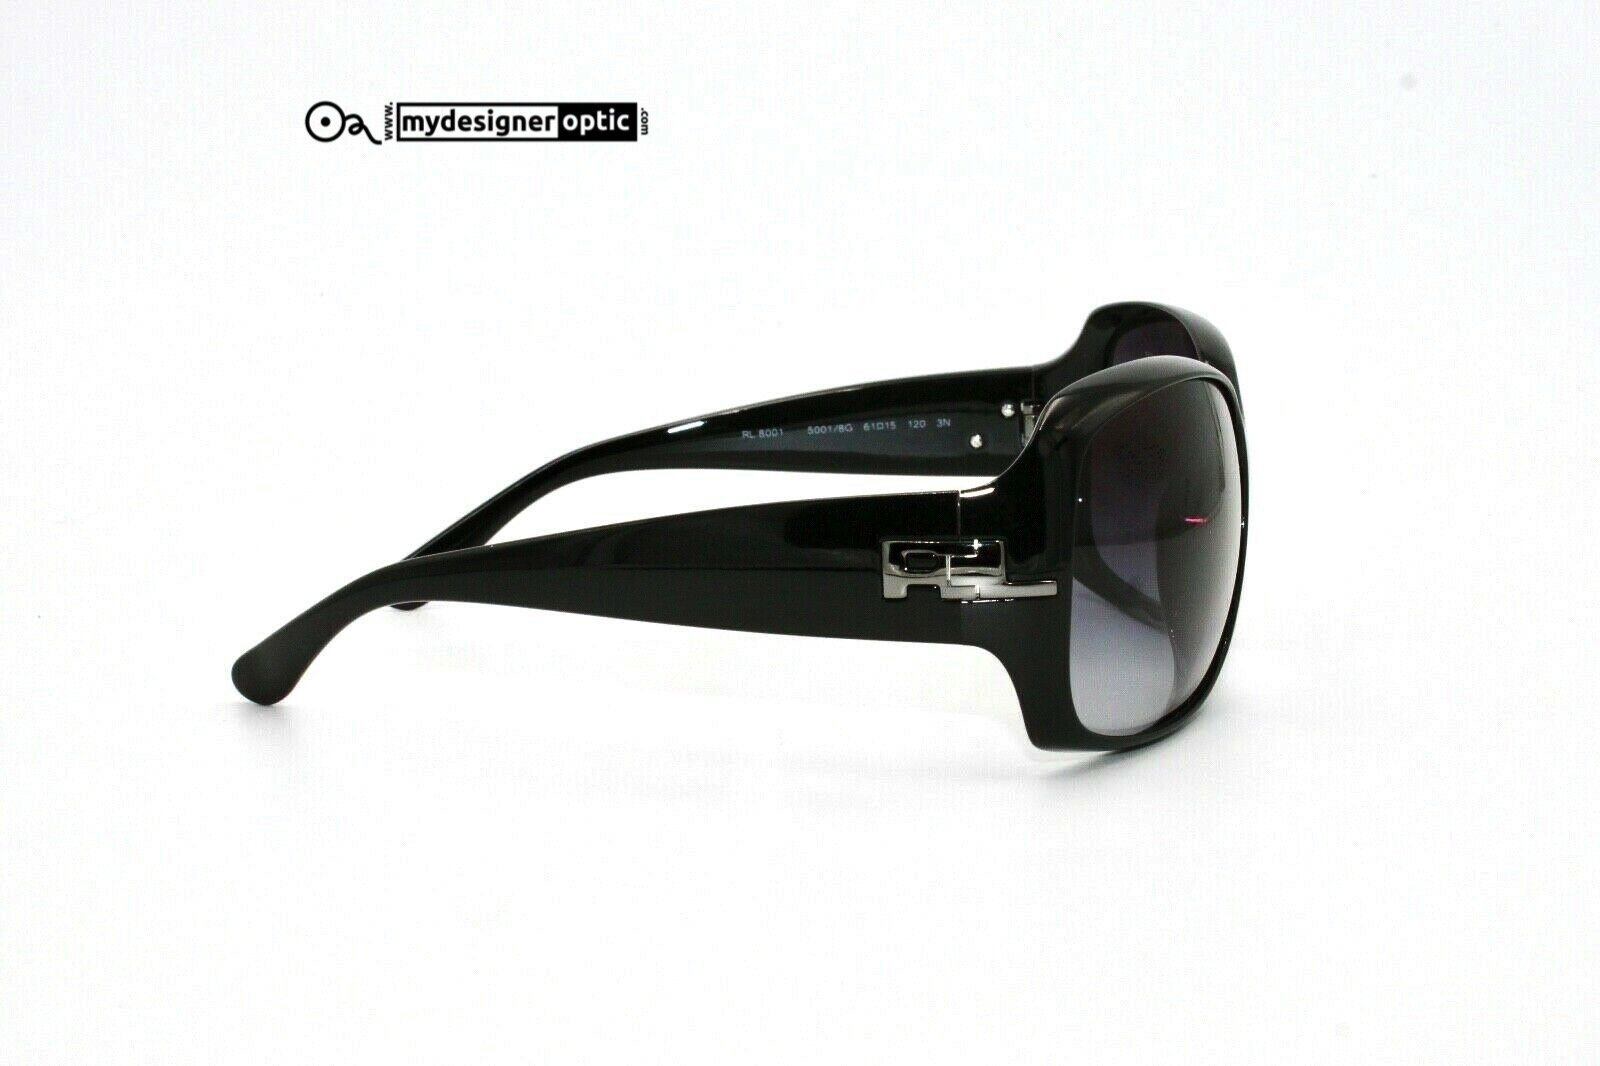 Ralph Lauren Sunglasses RL 8001 5001/8G 61 15 120 3N Made in Italy - Mydesigneroptic